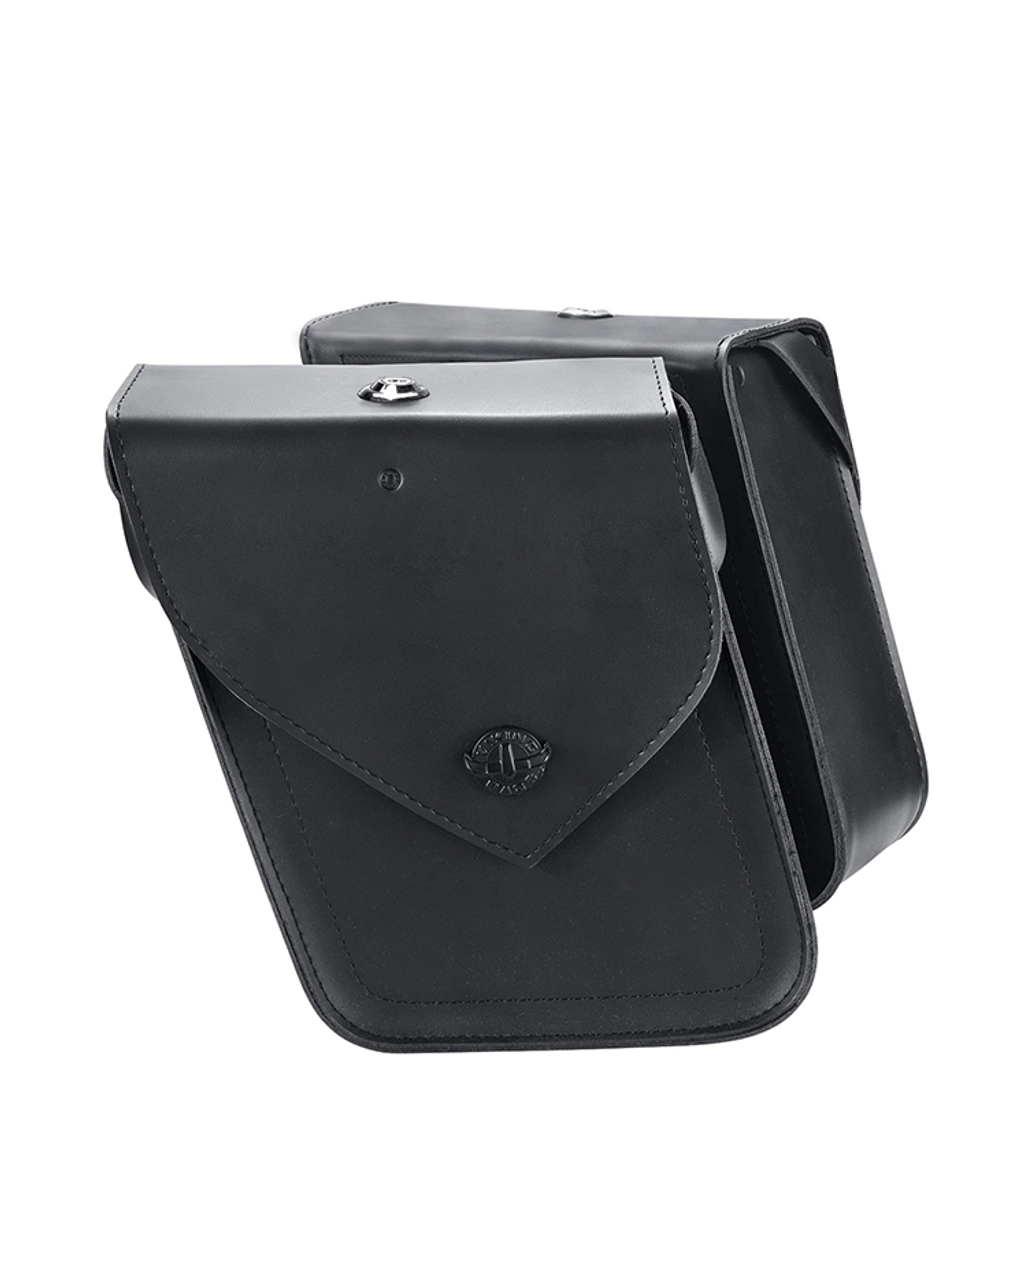 Viking Dark Age Compact Plain Leather Motorcycle Saddlebags For Sportster 883 Iron XL883N Both bag view